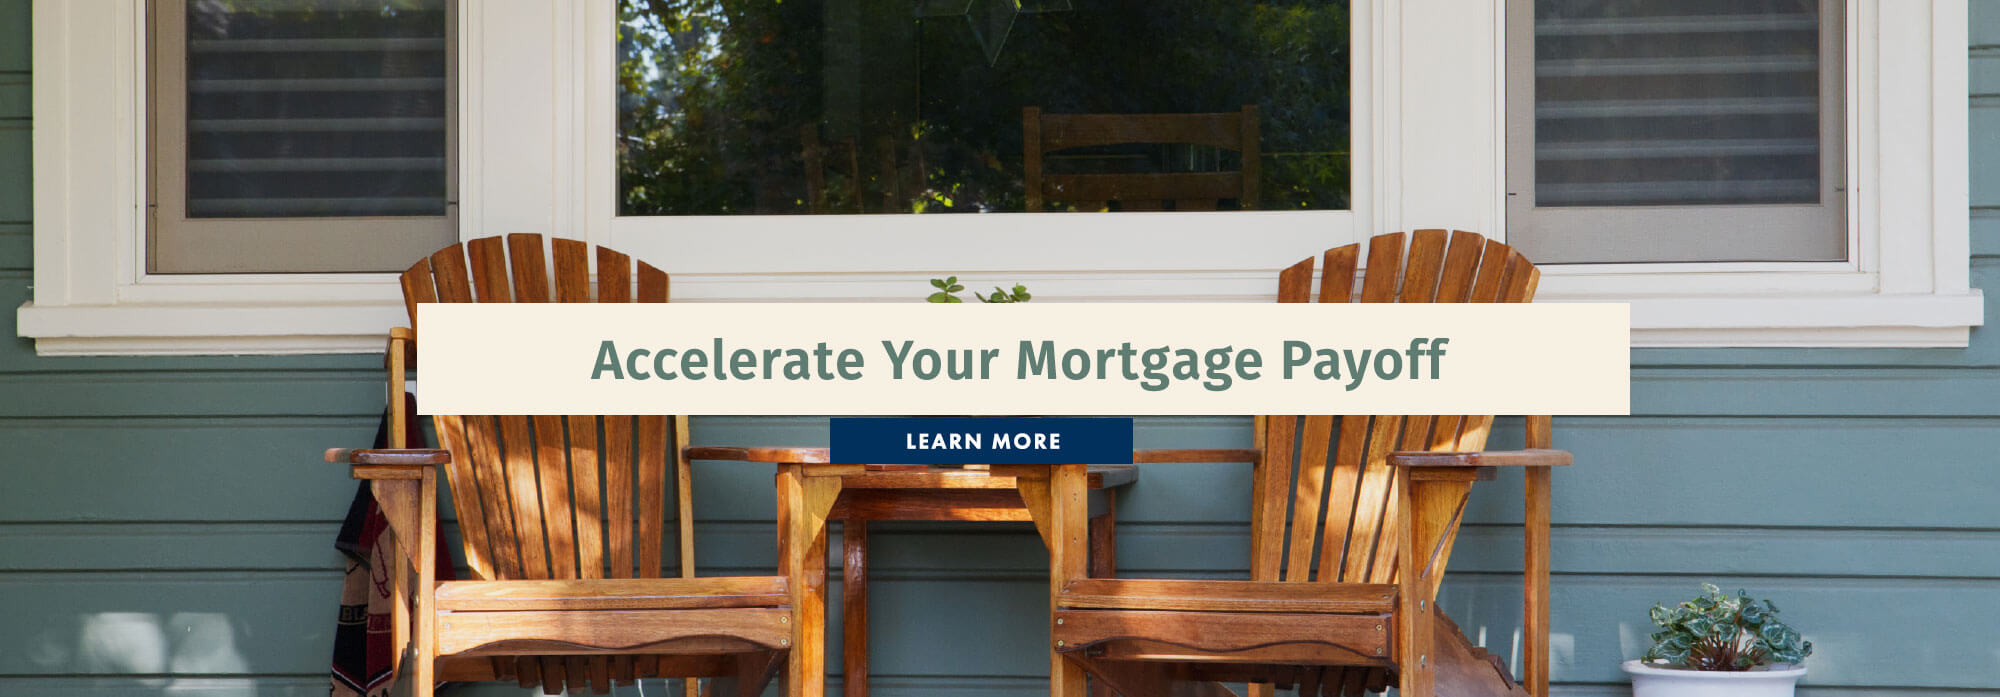 Accelerate Your Mortgage Payoff